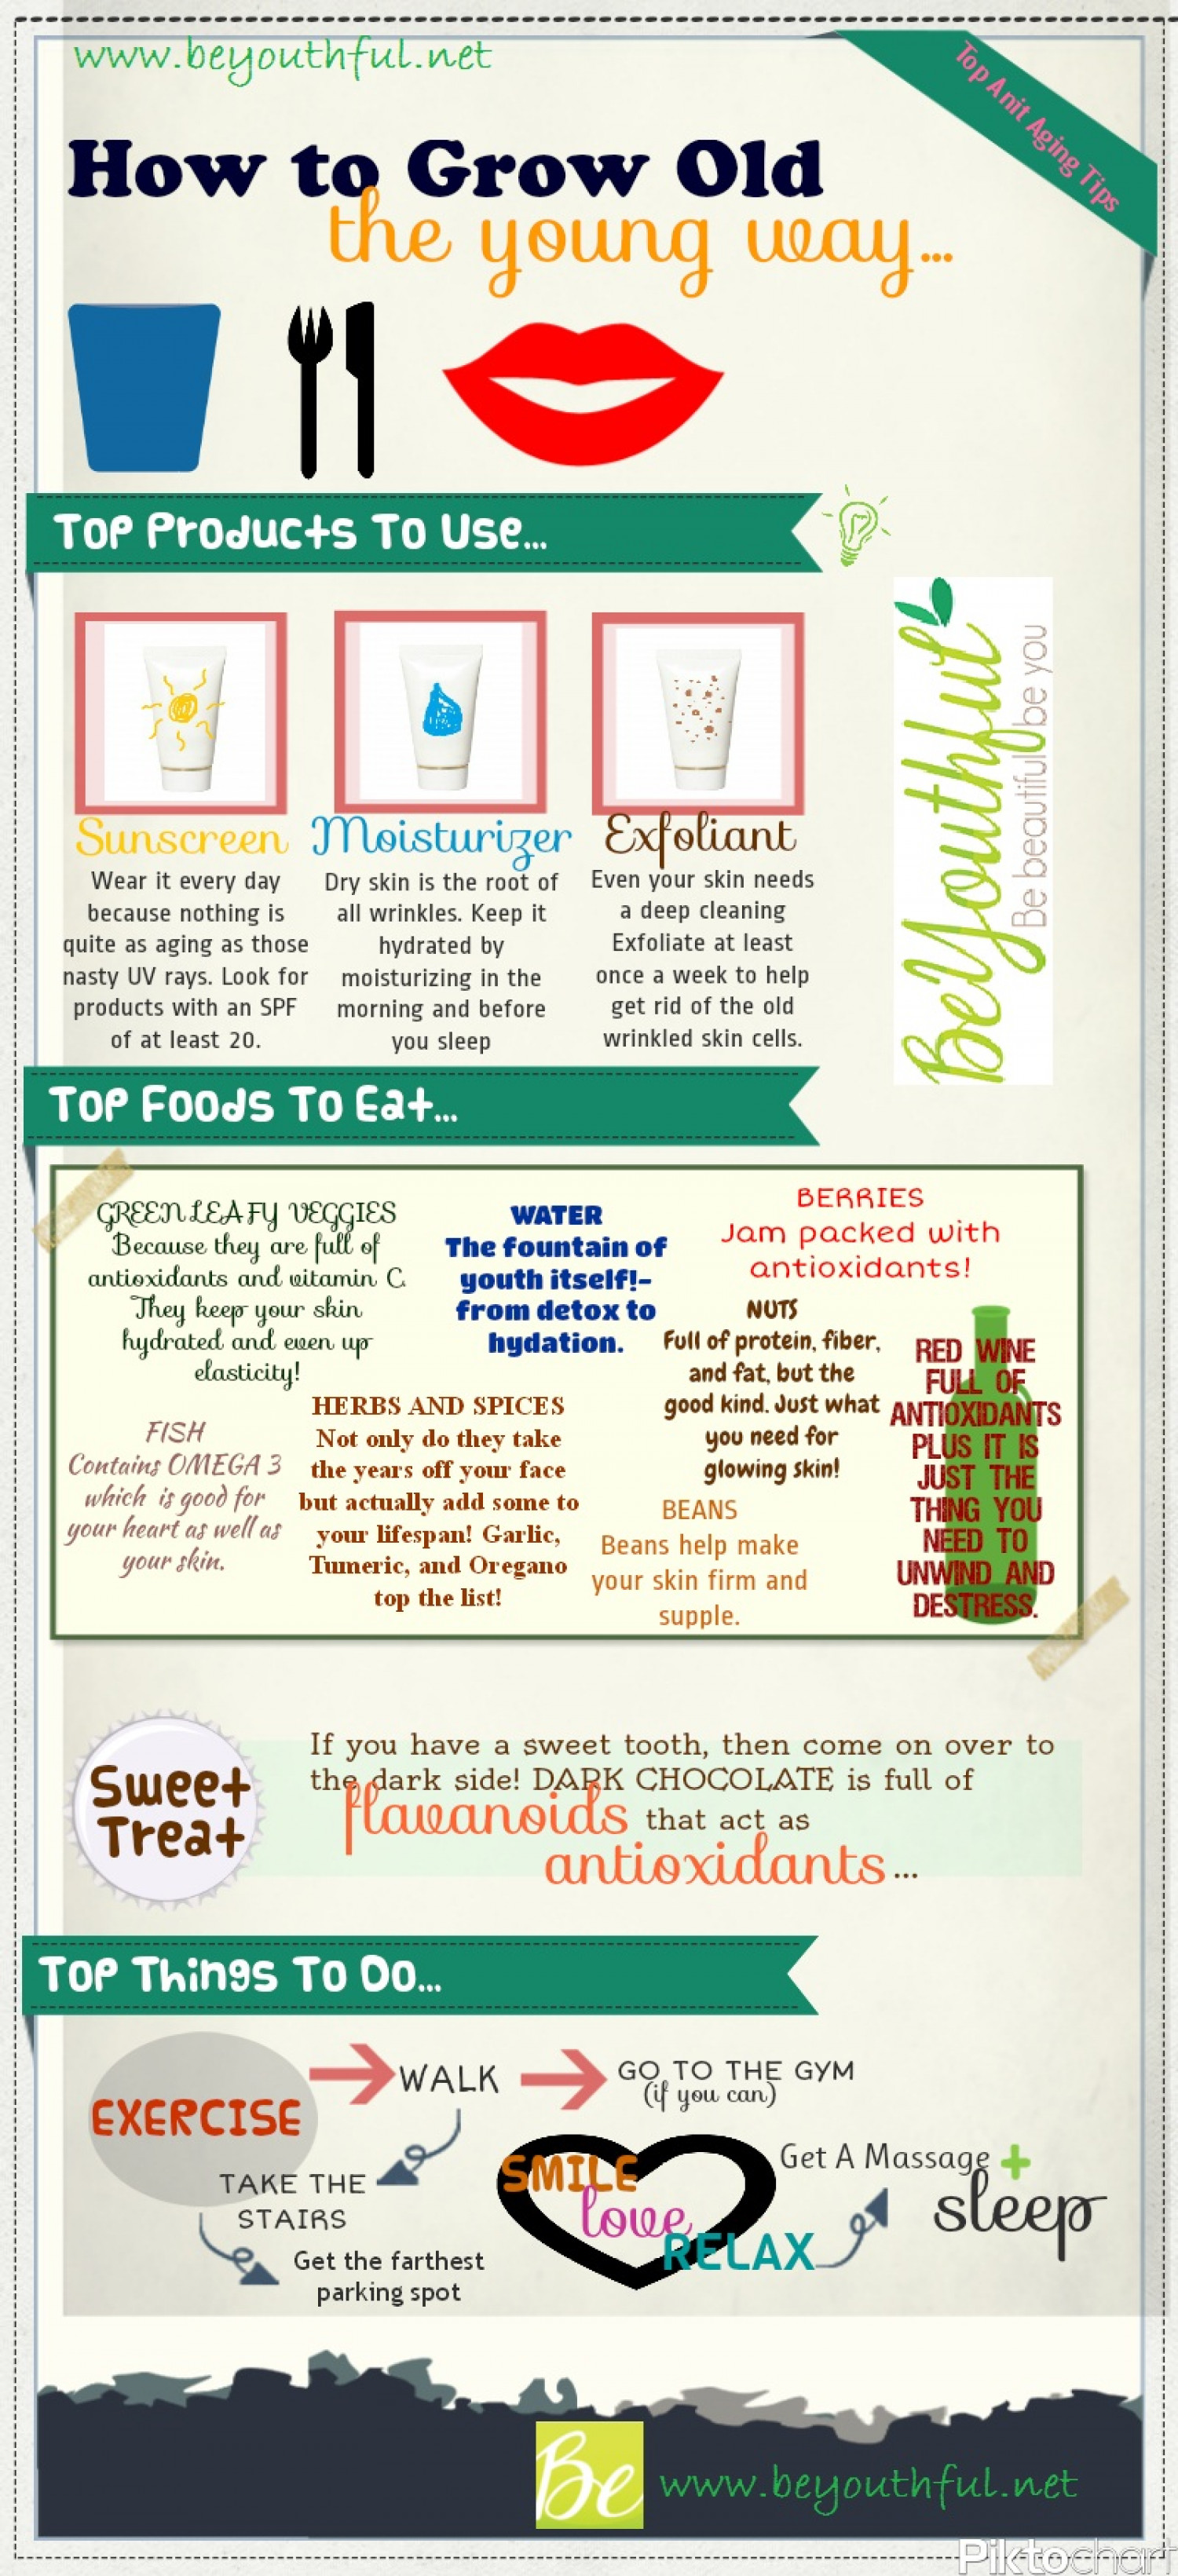 How To Grow Old The Young Way Infographic